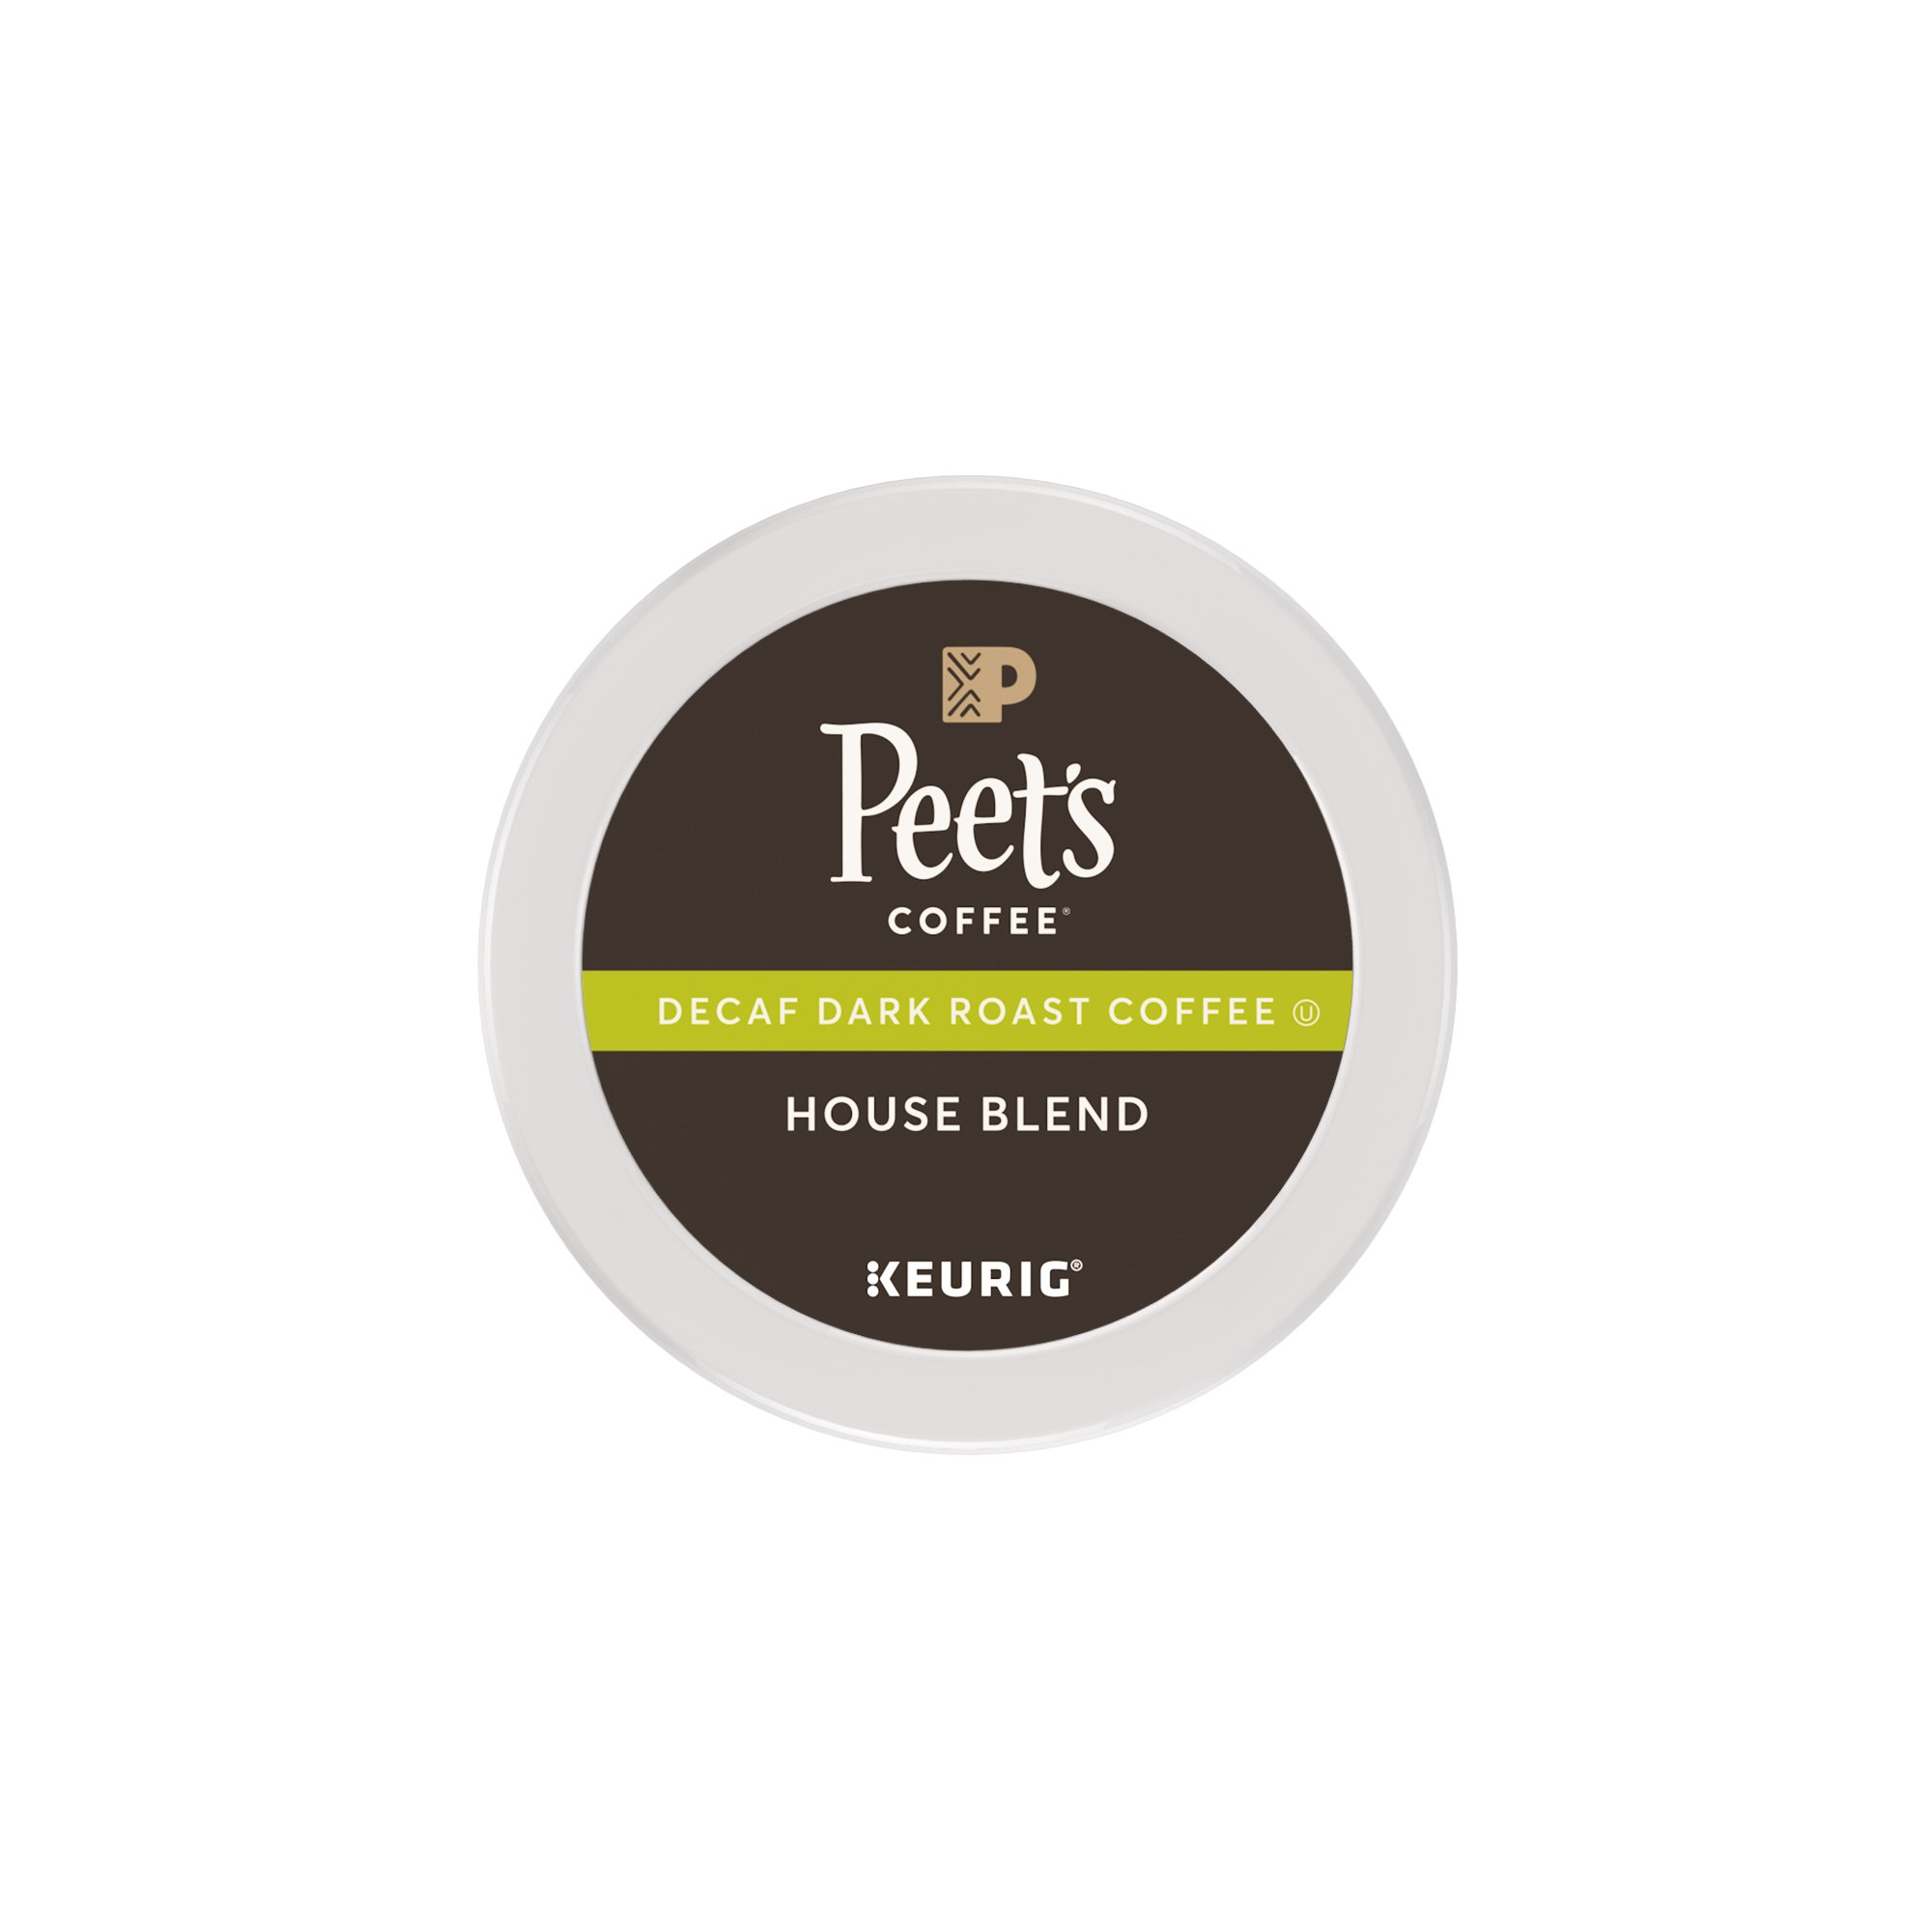 Peet's Coffee K-Cup Packs House Blend, Decaf Dark Roast Coffee, 16 Count Bright, Lively, and Balanced Dark Roast Blend of Latin American Coffees, Deep Roasted, Hint of Spice